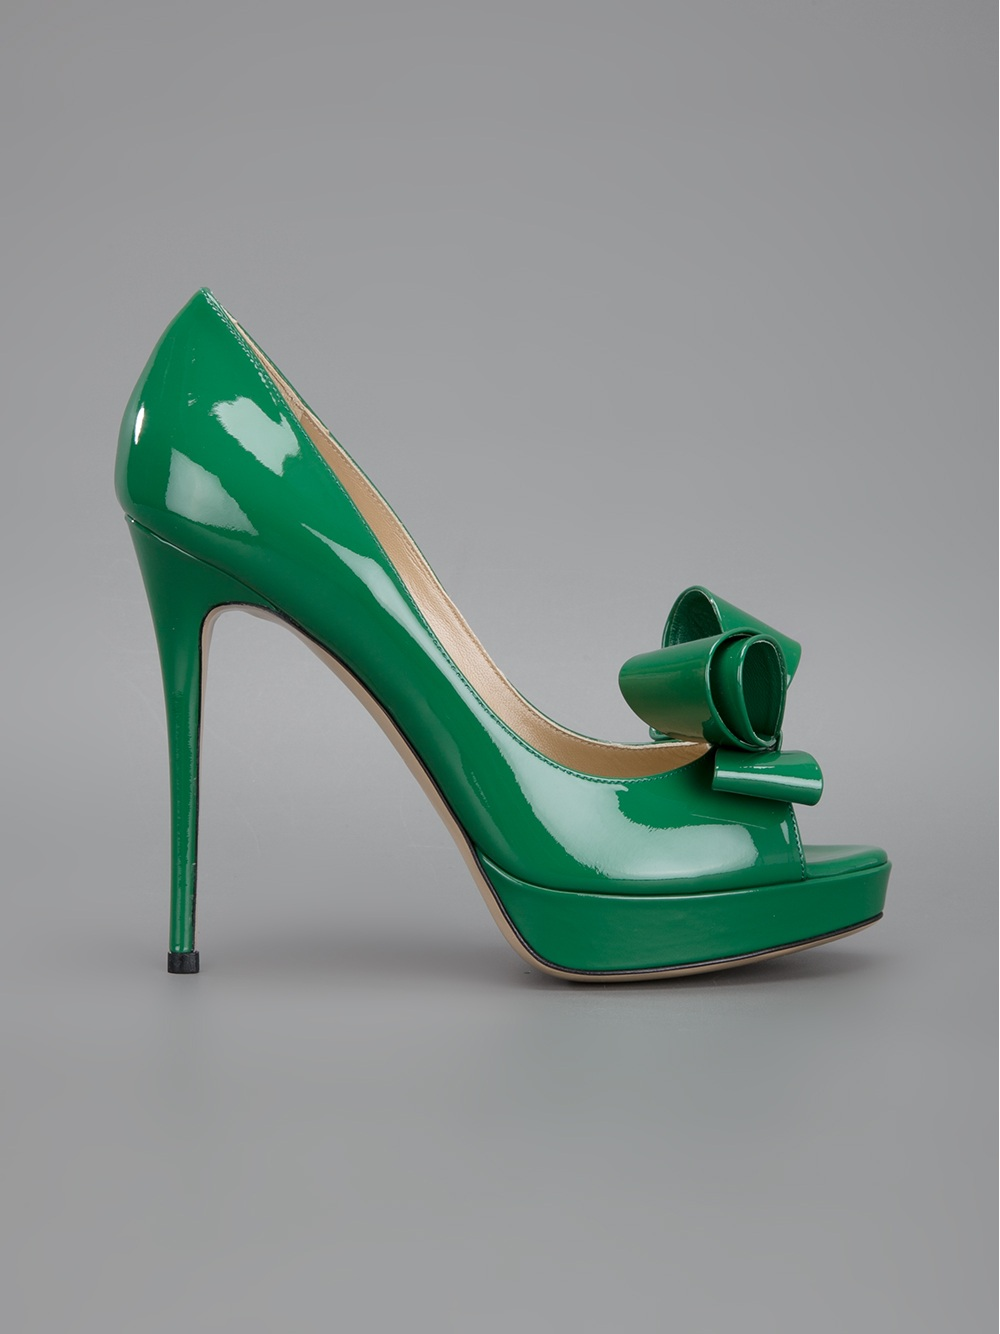 6e3c313548af So here for your enjoyment i present once again the Valentino pumps of  sheer perfection